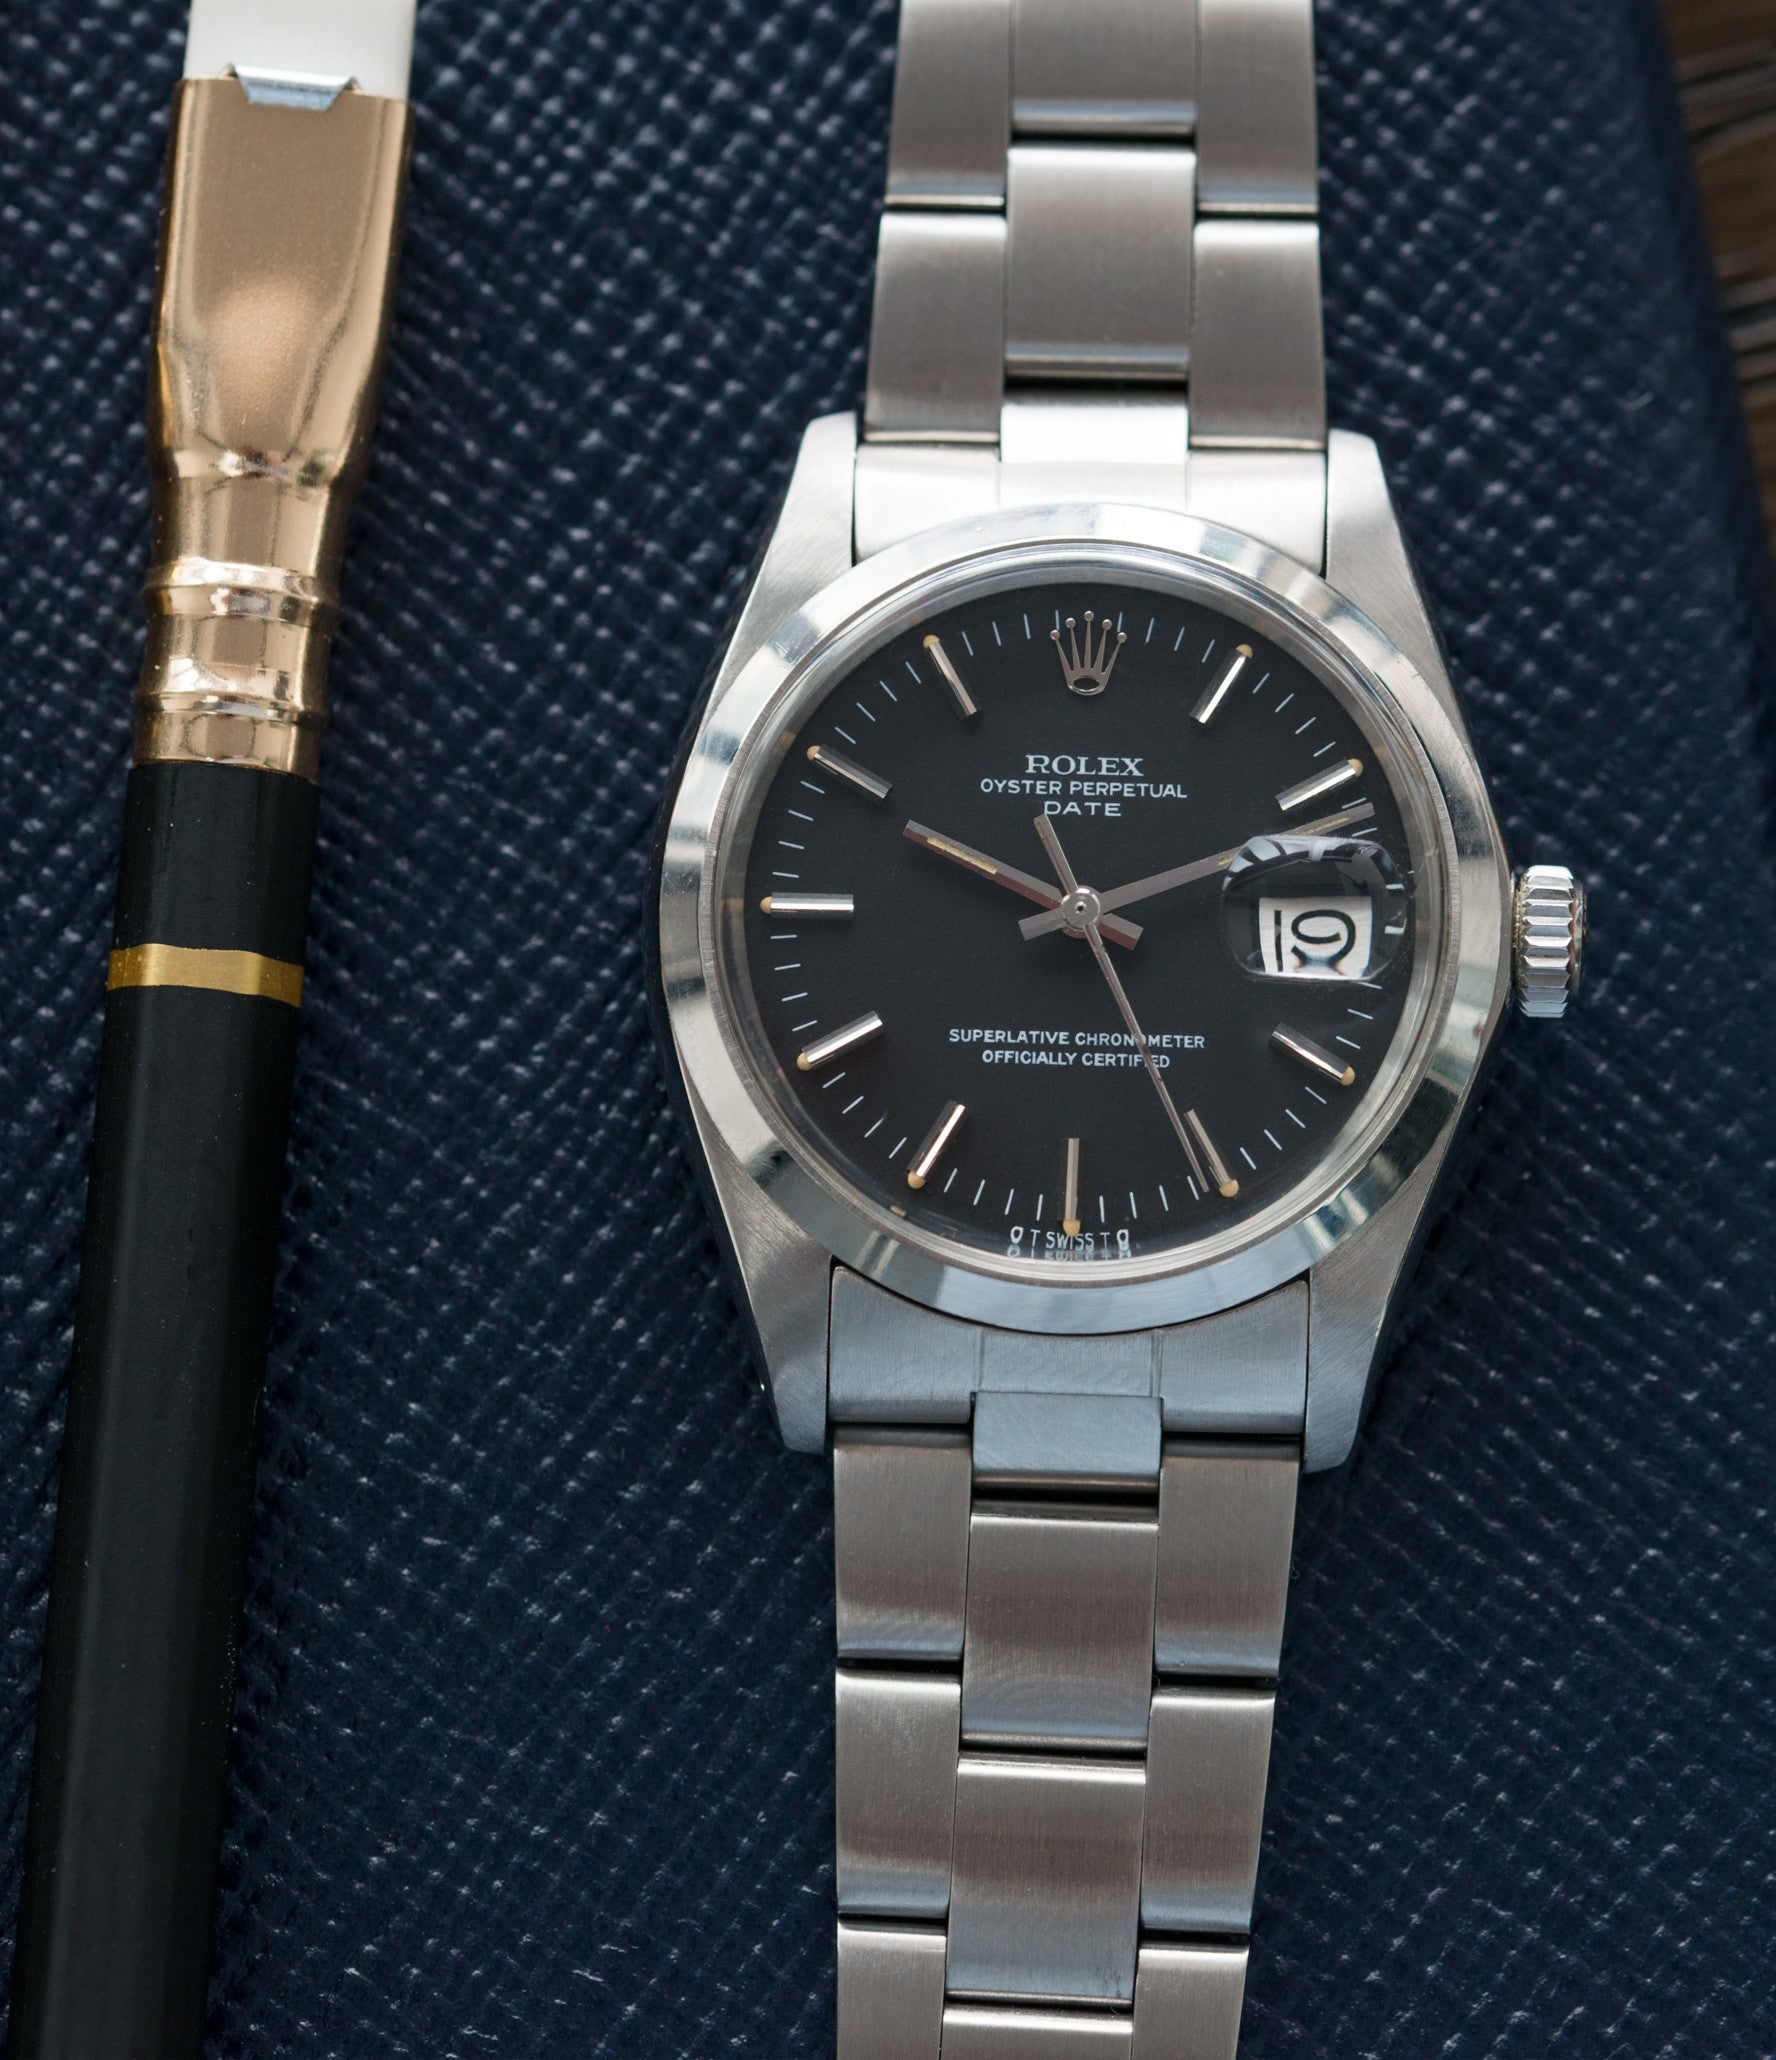 Rolex 1500 steel black sigma dial date sports vintage watch for sale online at A Collected Man vintage watch specialist